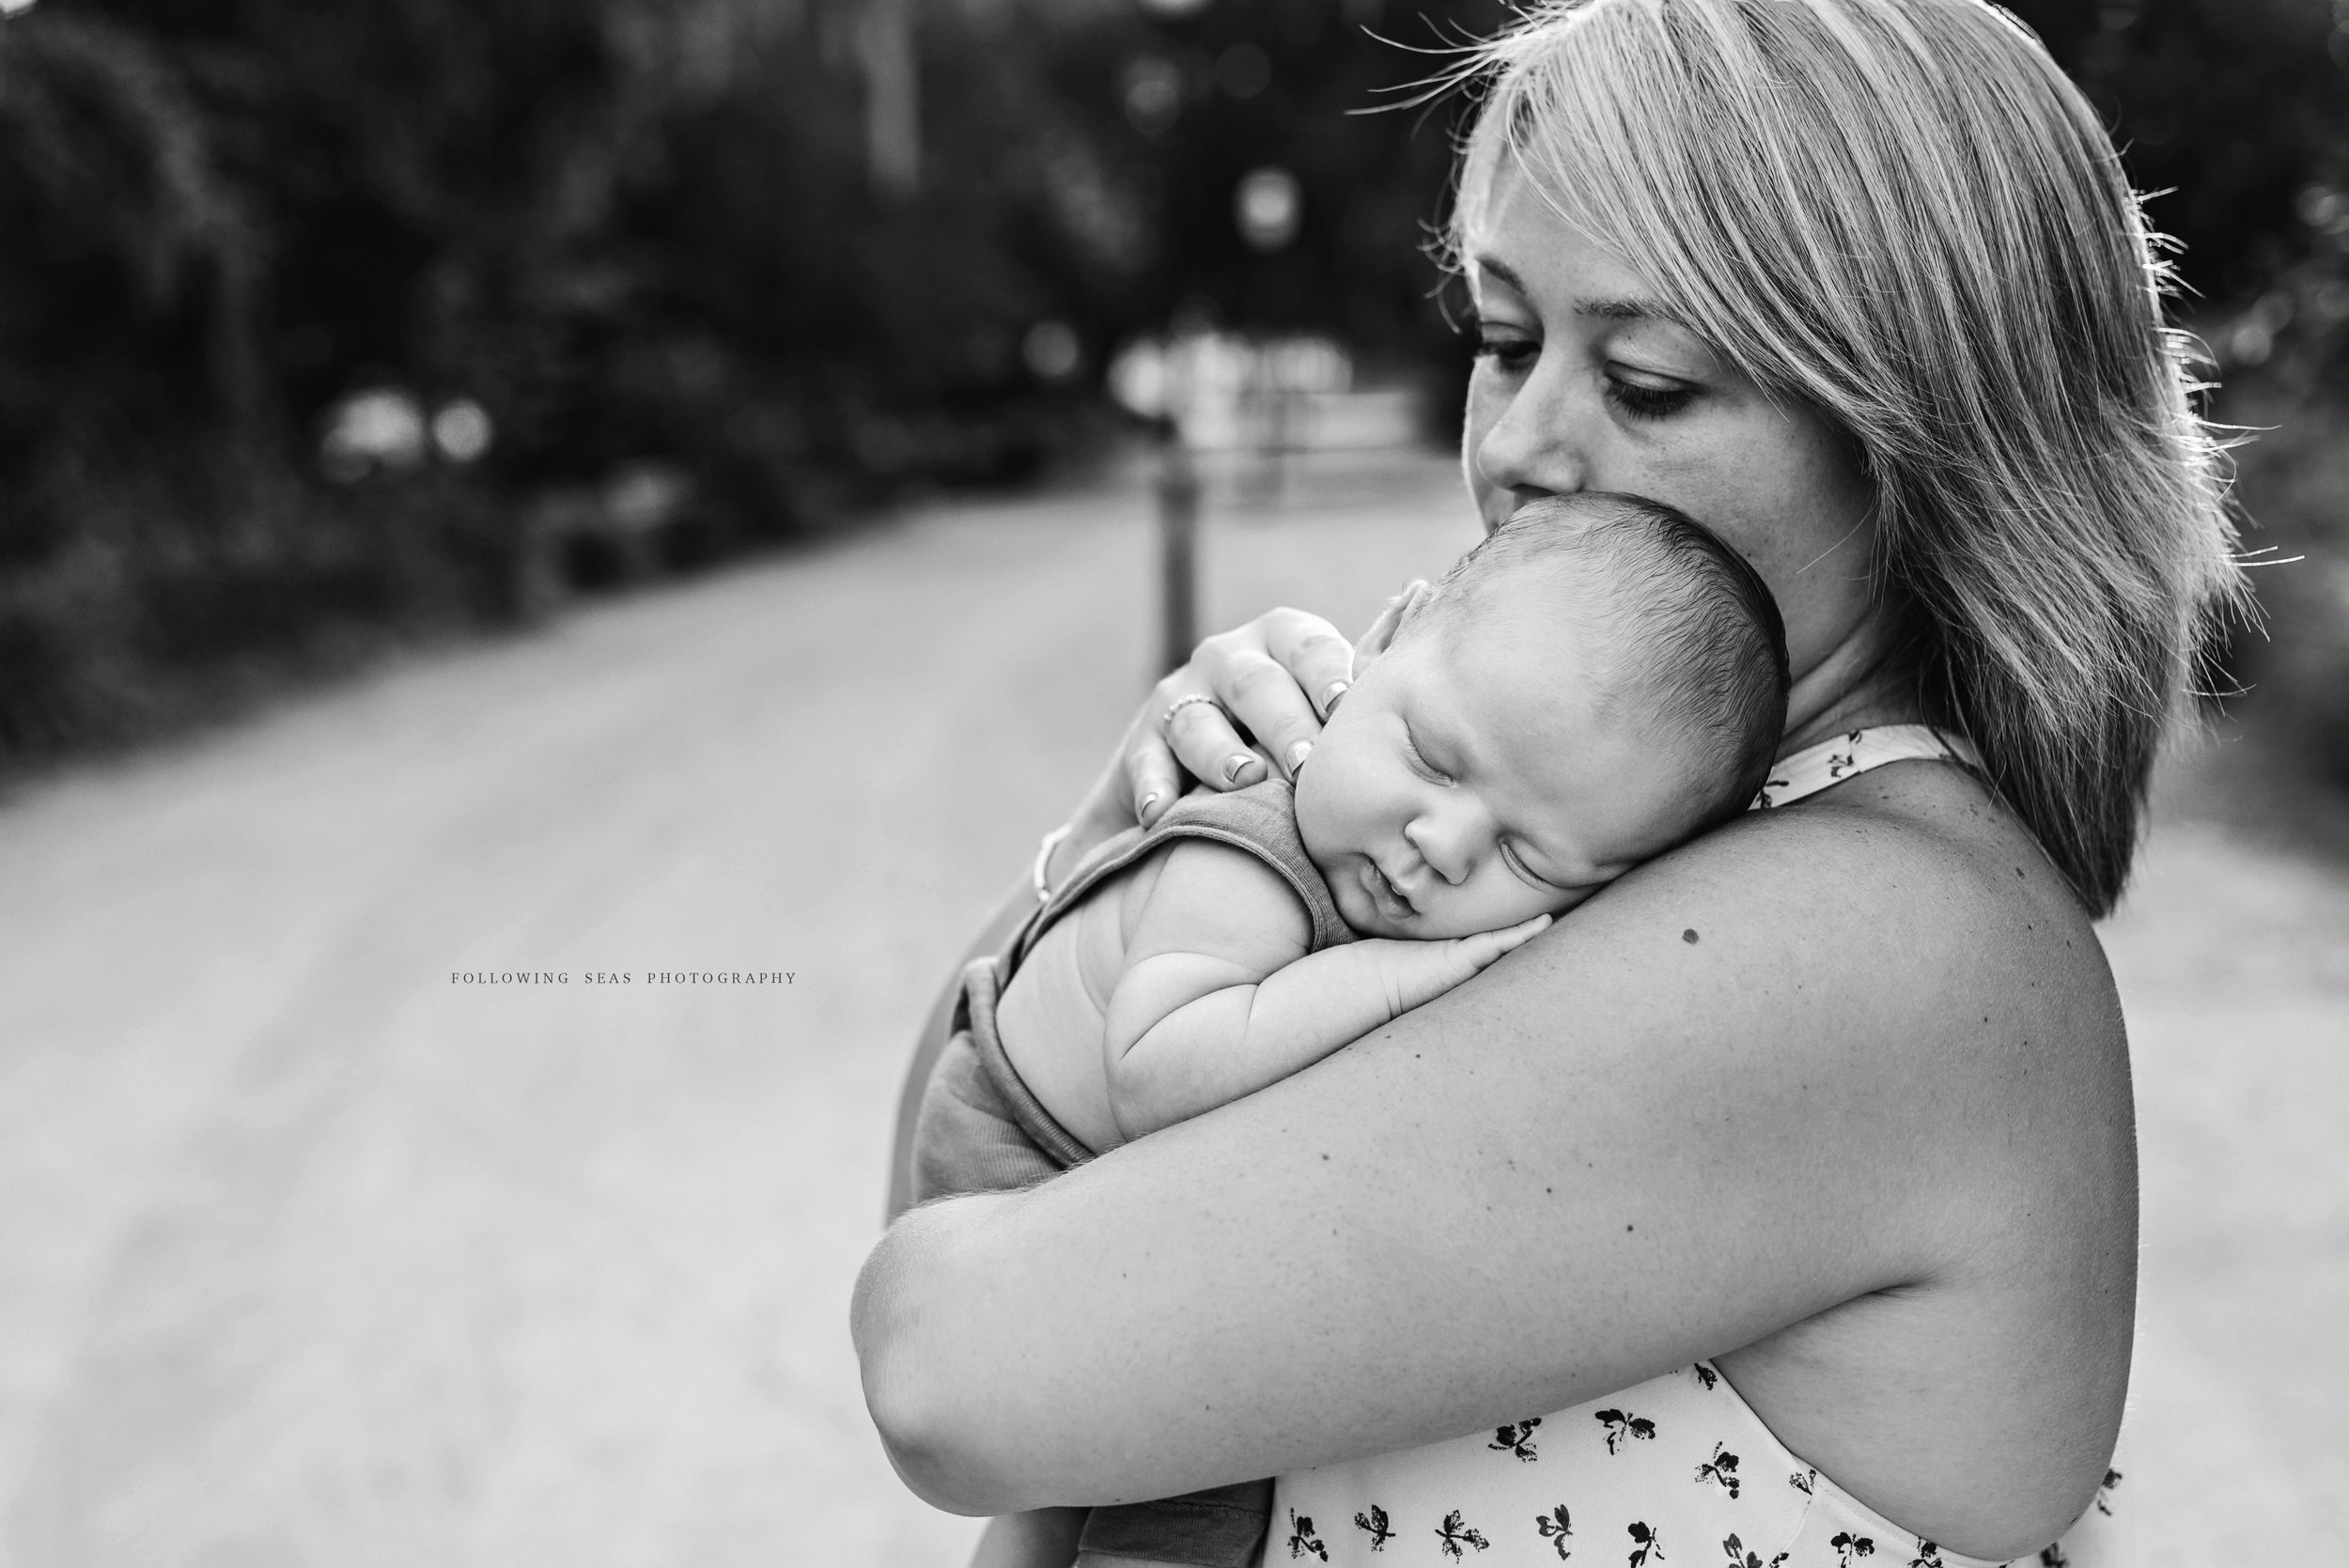 Charleston-Outdoor-Newborn-Photographer-Following-Seas-Photography-5975BW.jpg